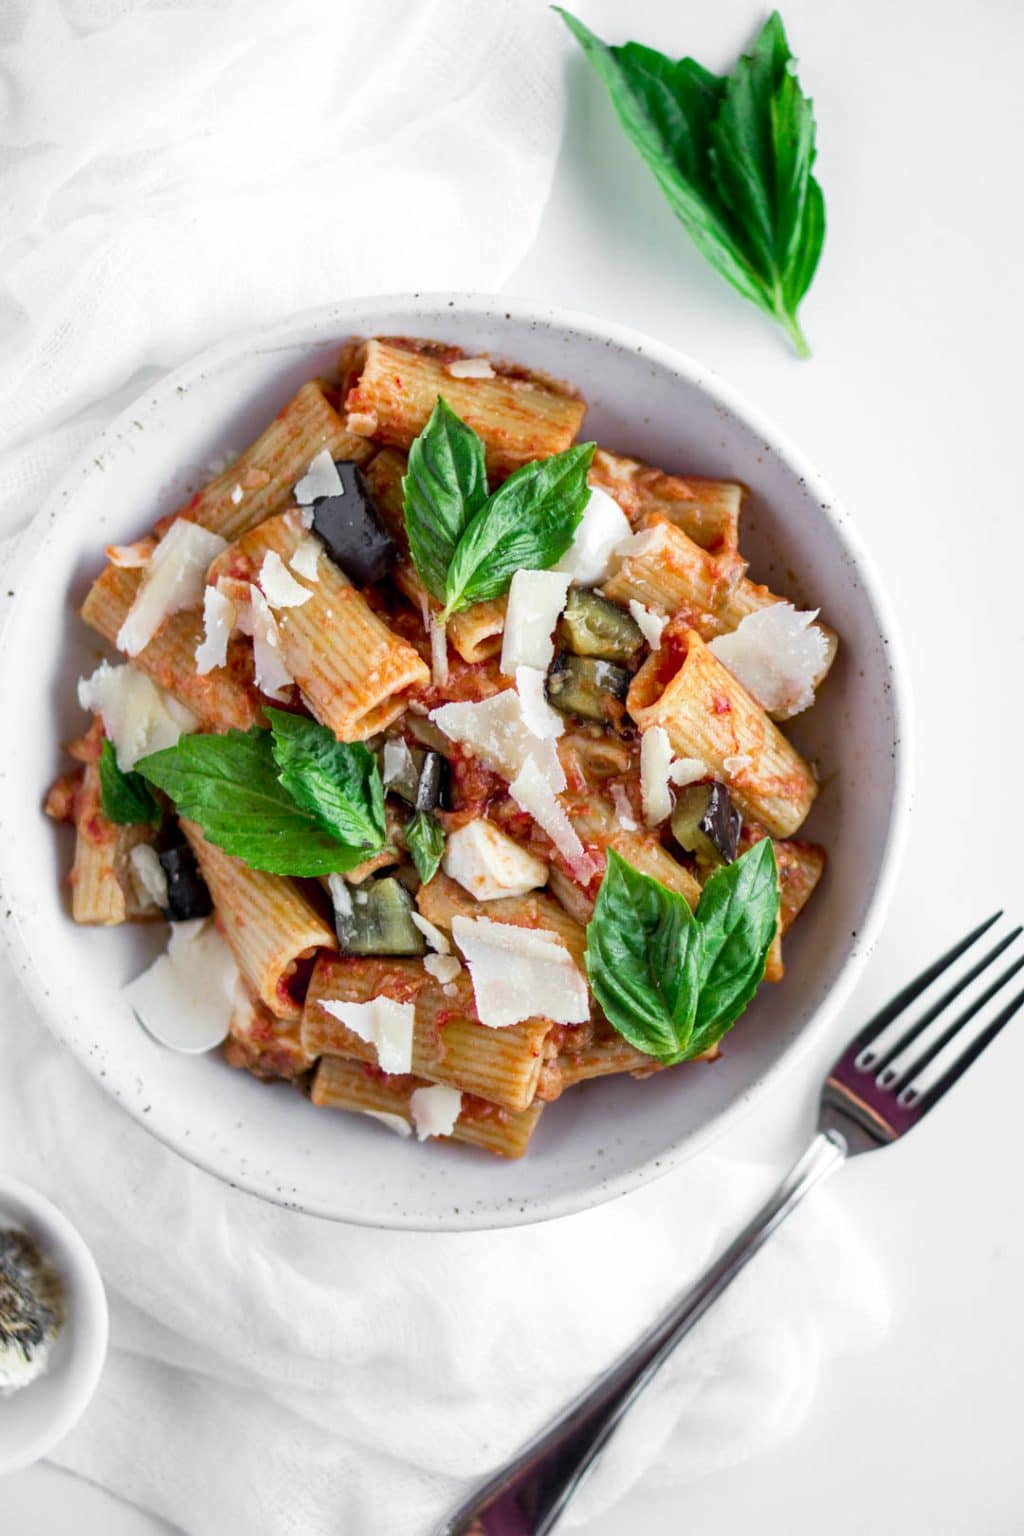 Eggplant pasta in a plate topped with fresh basil on a napkin